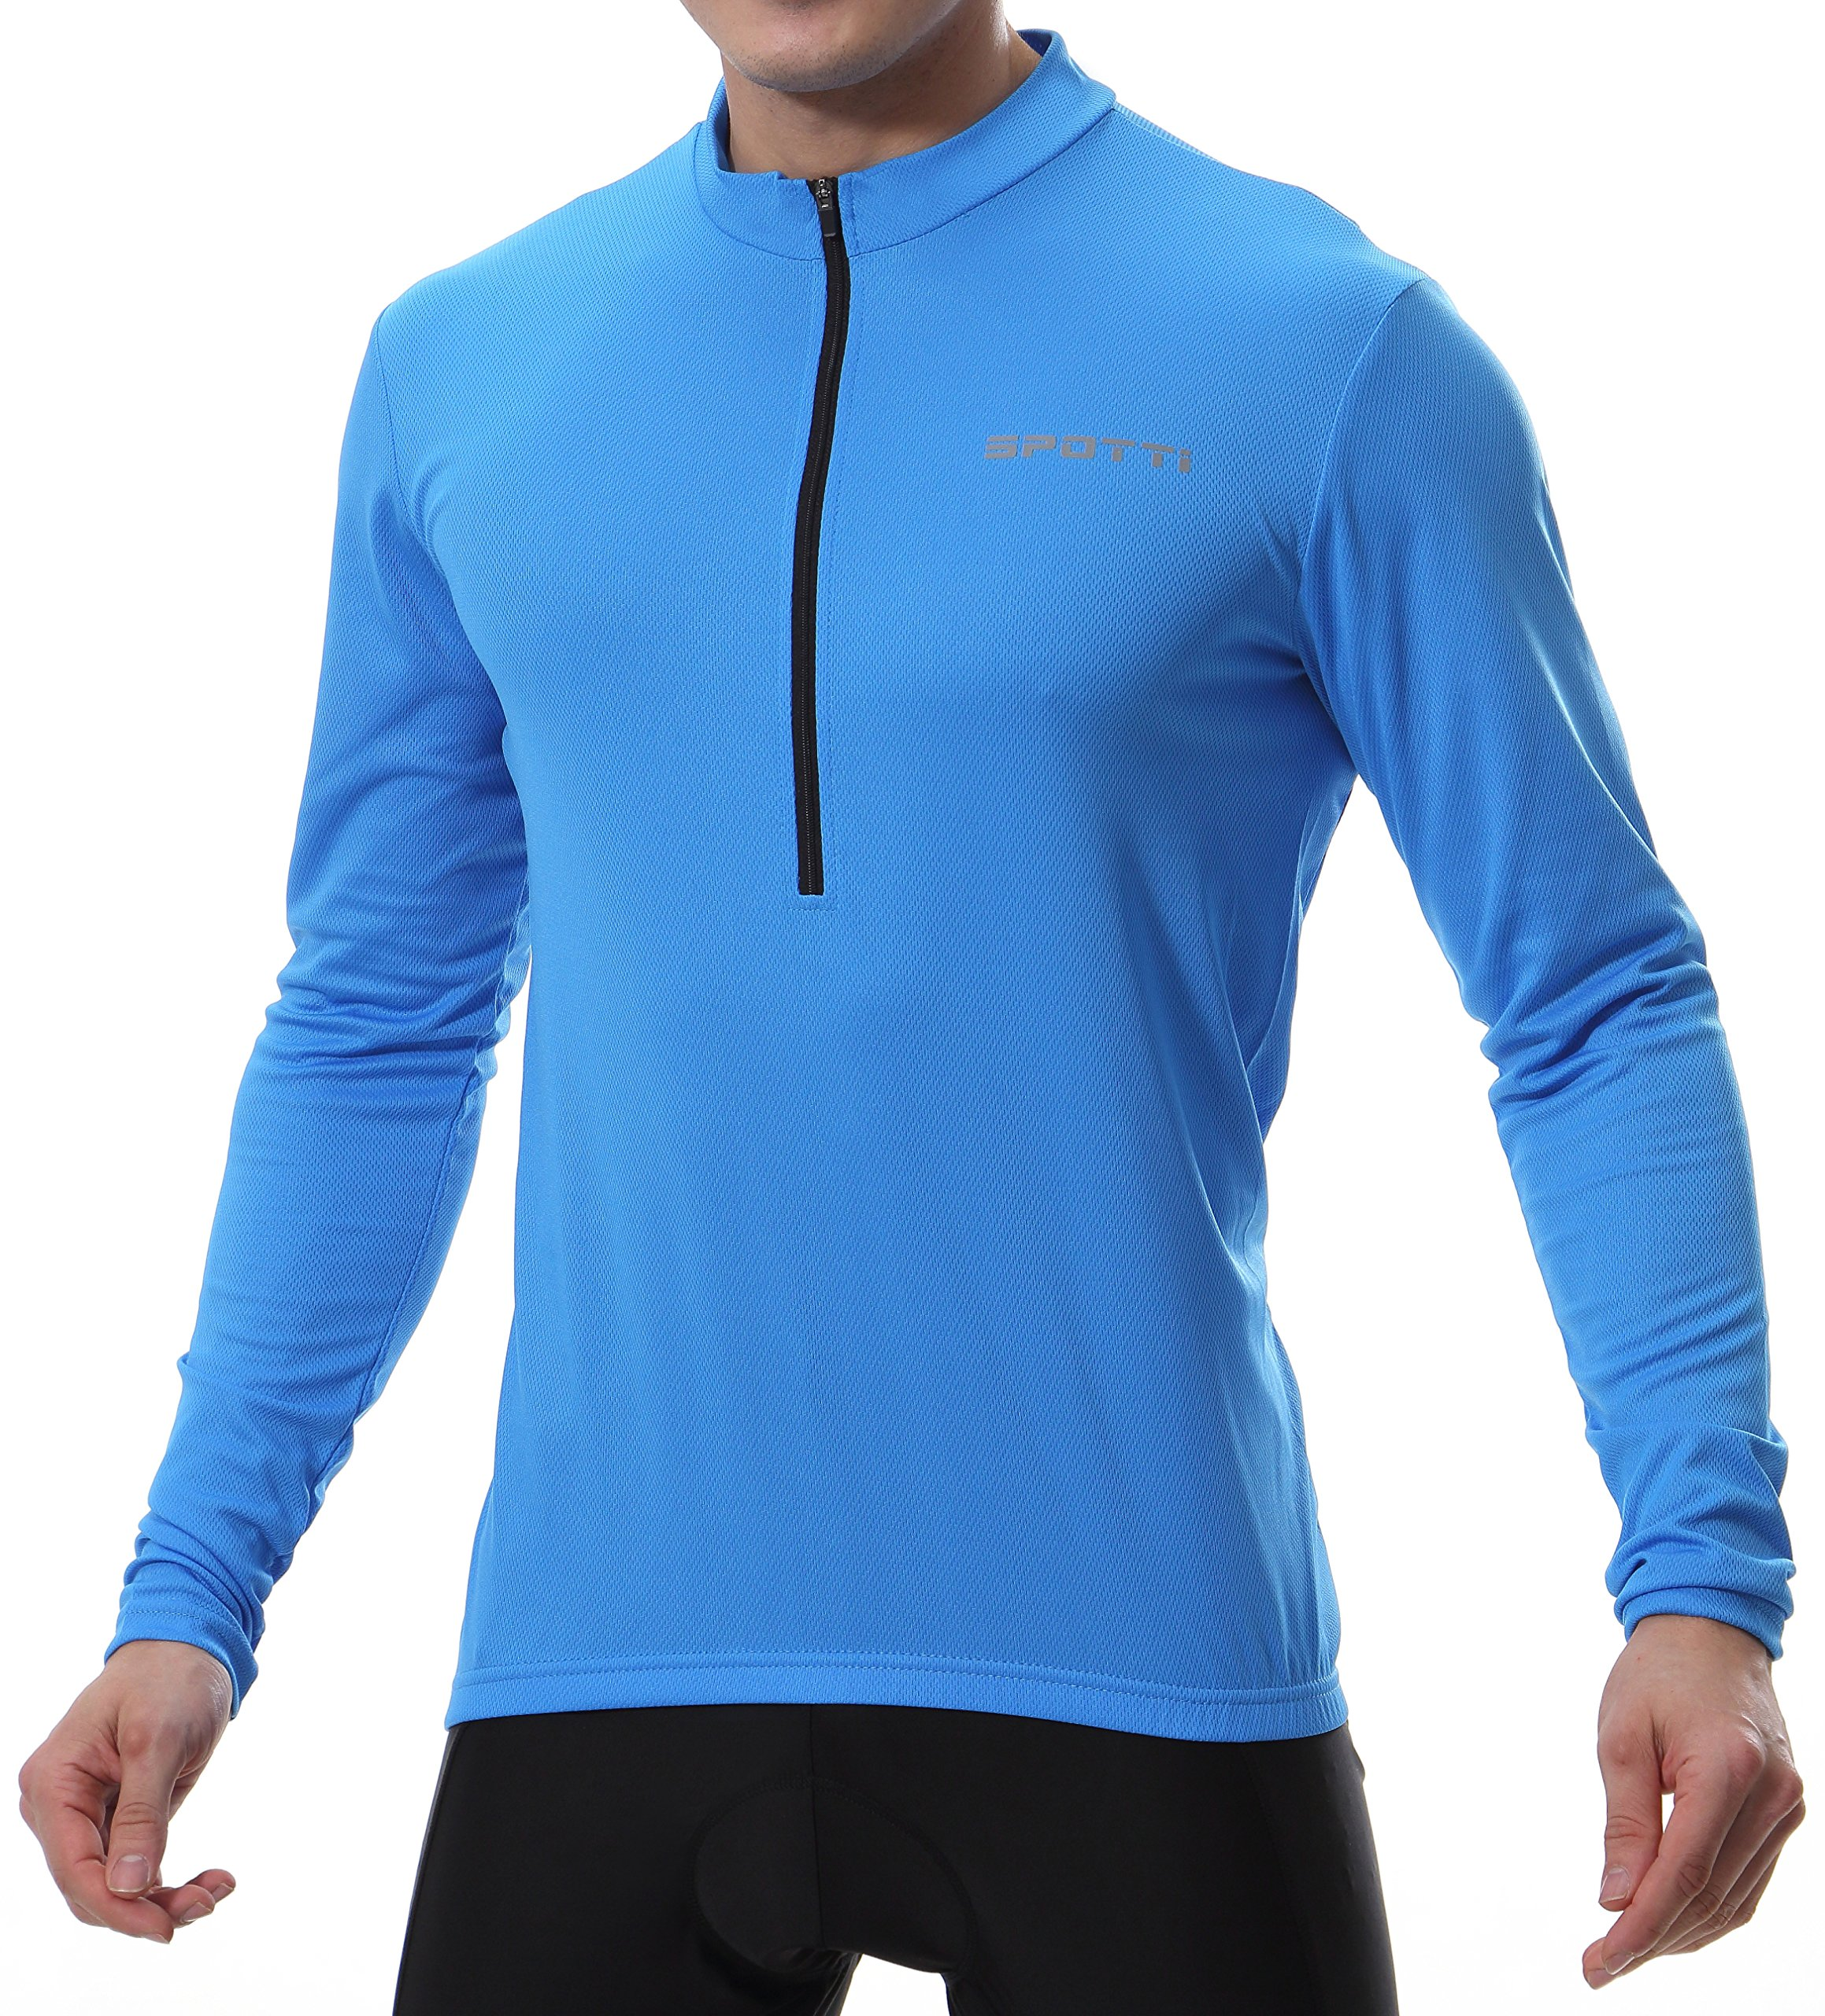 Spotti Men's Long Sleeve Cycling Jersey, Bike Biking Shirt- Breathable and Quick Dry (Chest 36-38 - S, Blue)